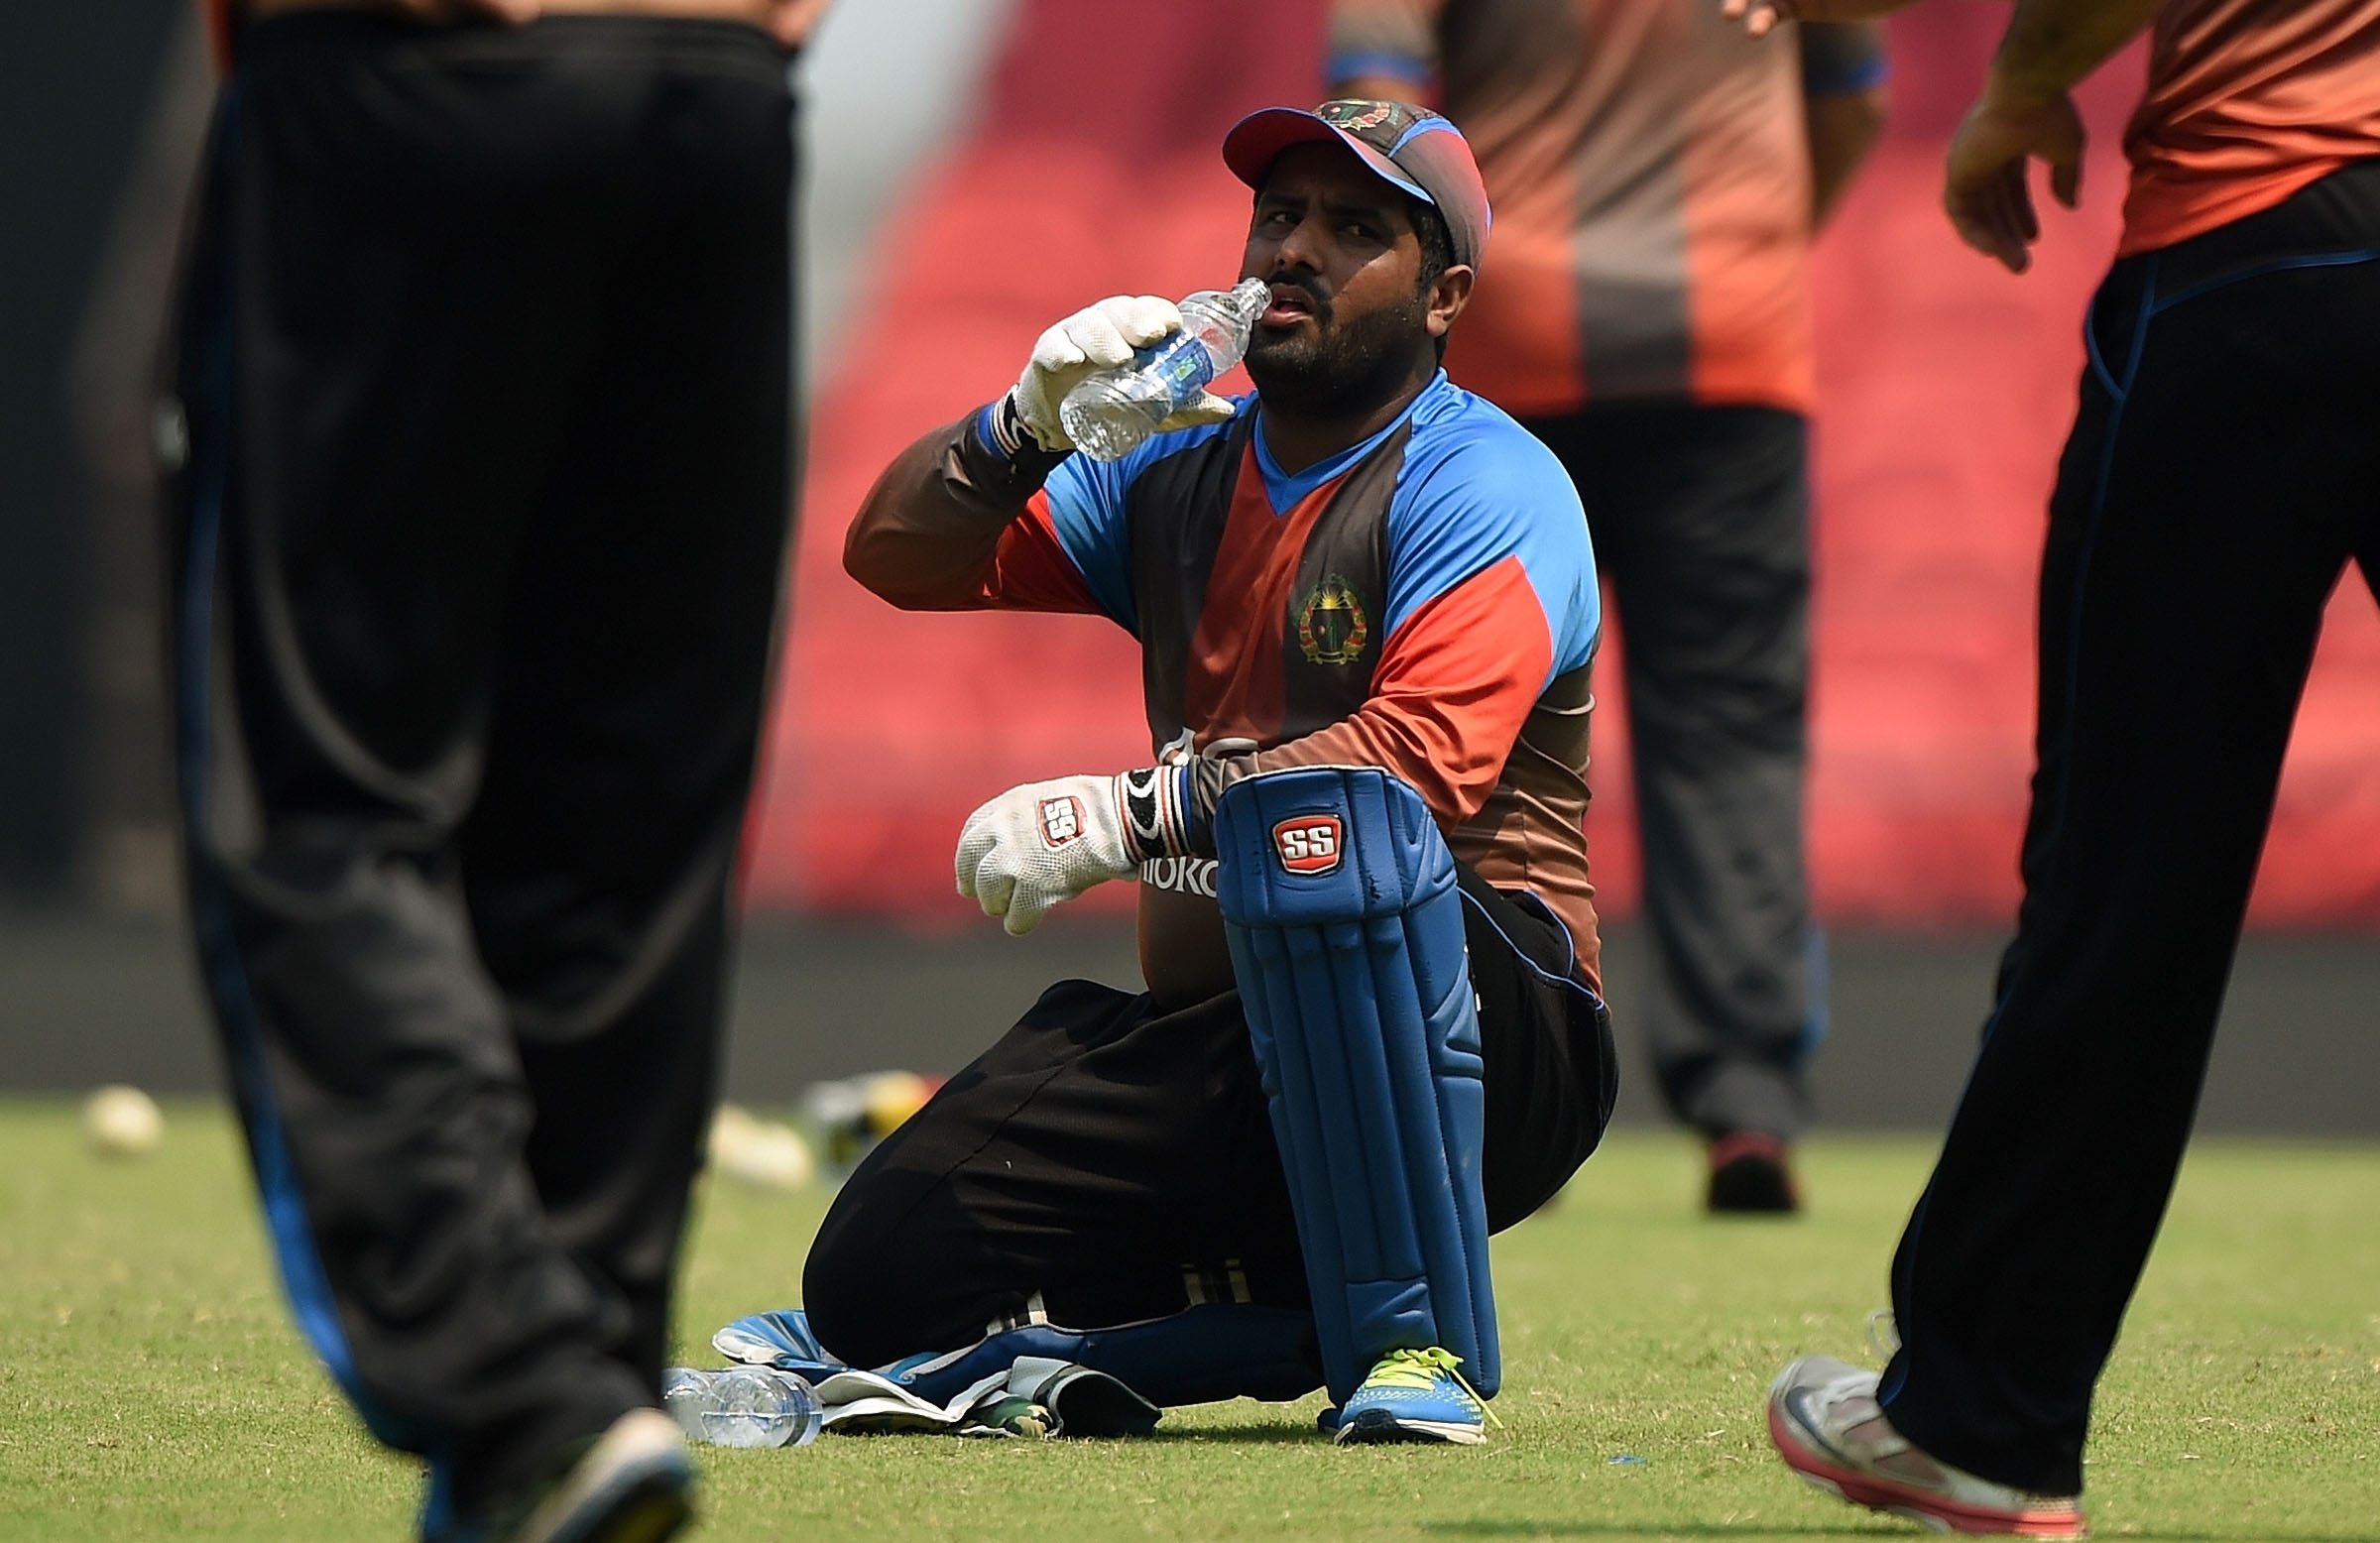 Mohammad Shahzad has been fined by the ACB // Getty